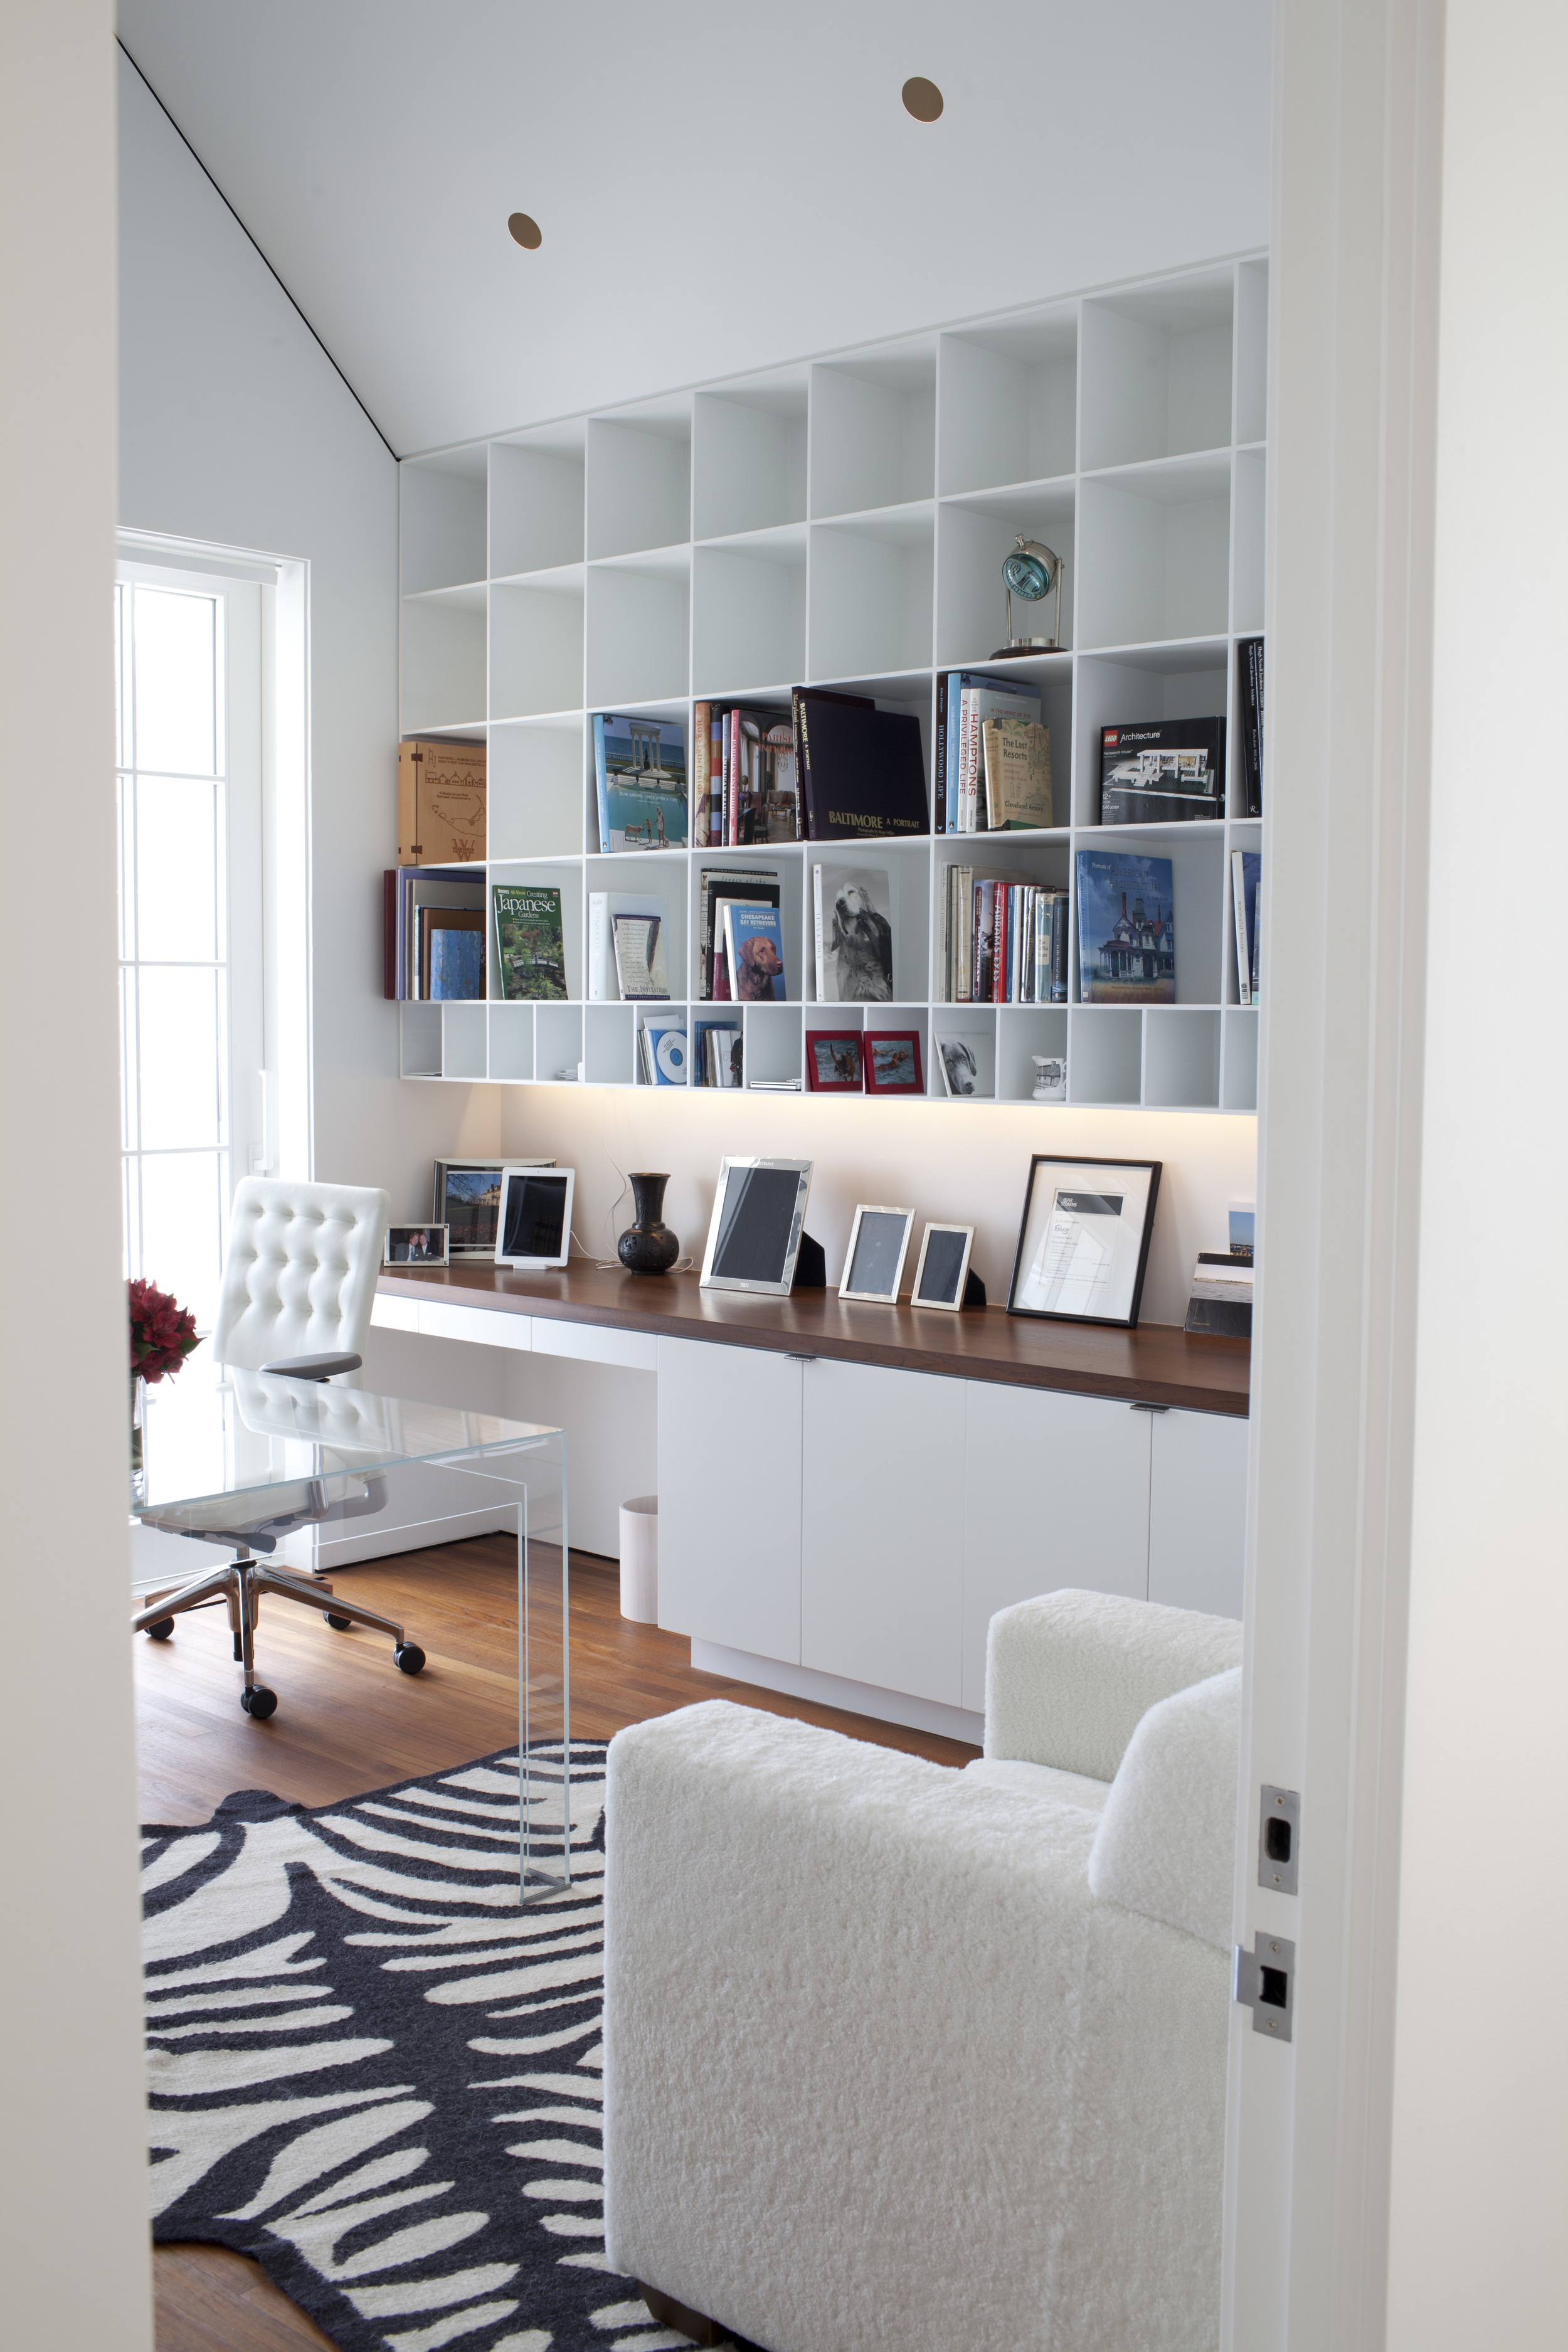 Bookcases over a desk and hidden lights.